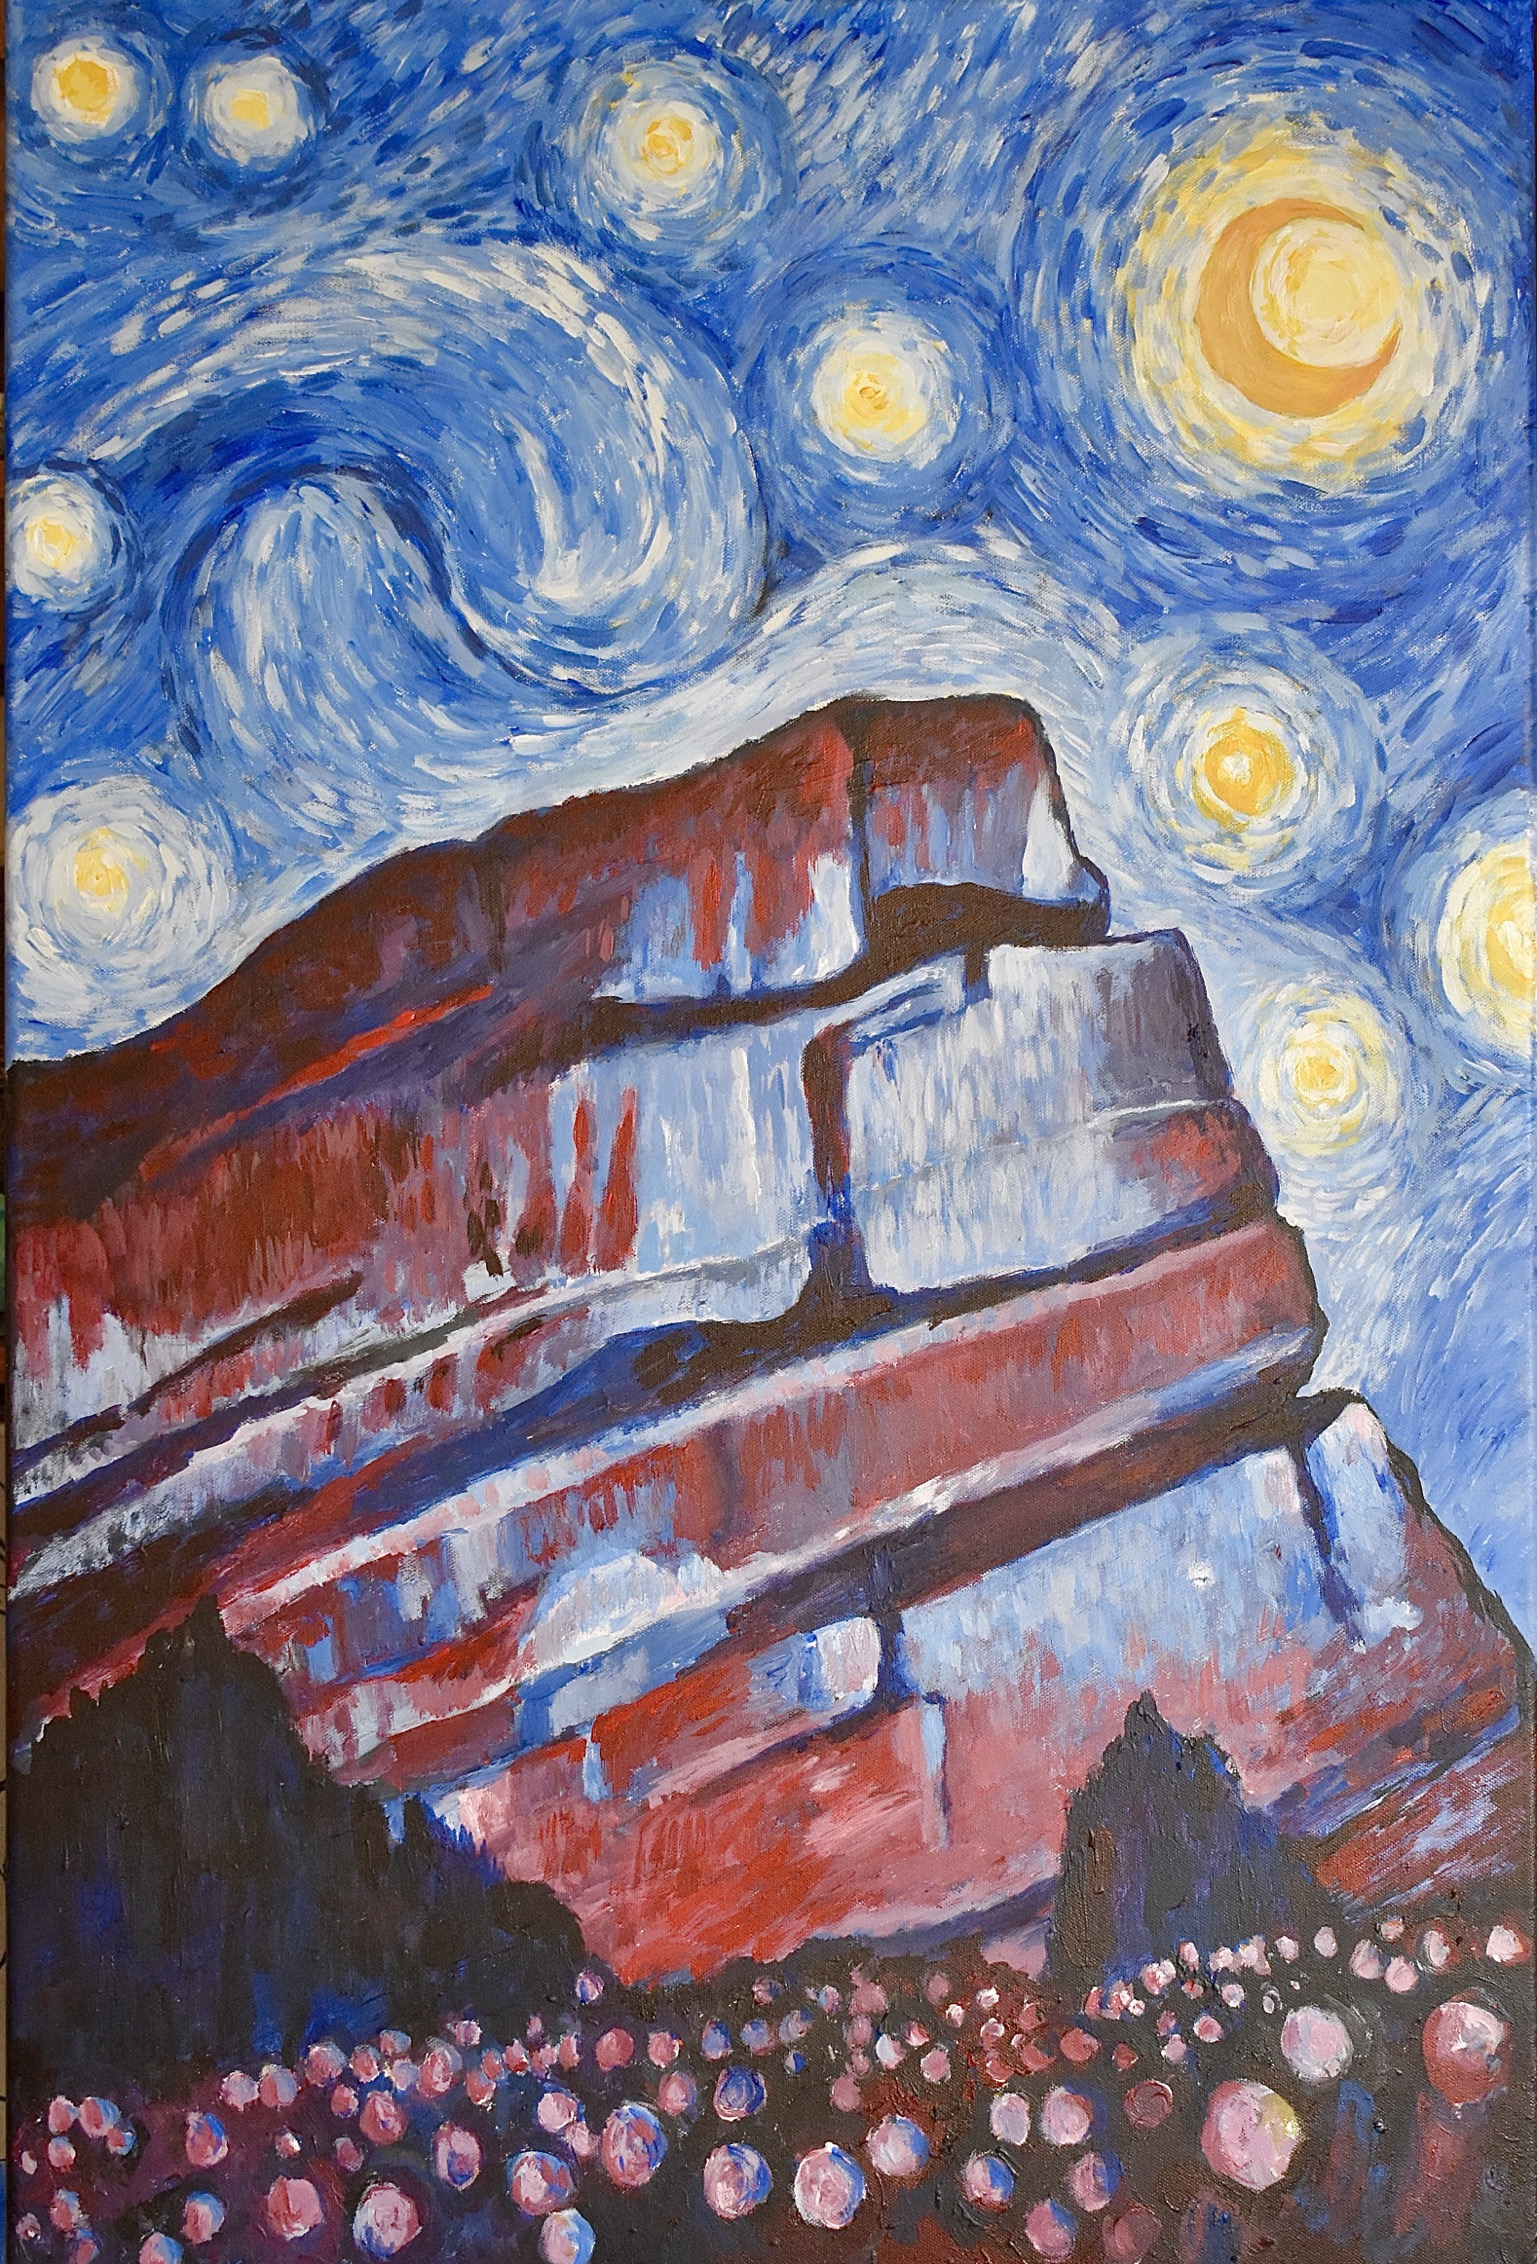 brent jones art, brent jones, denver art, acrylic art, contemporary art, local art, brent jones denver, red rocks, red rocks art, red rocks painting